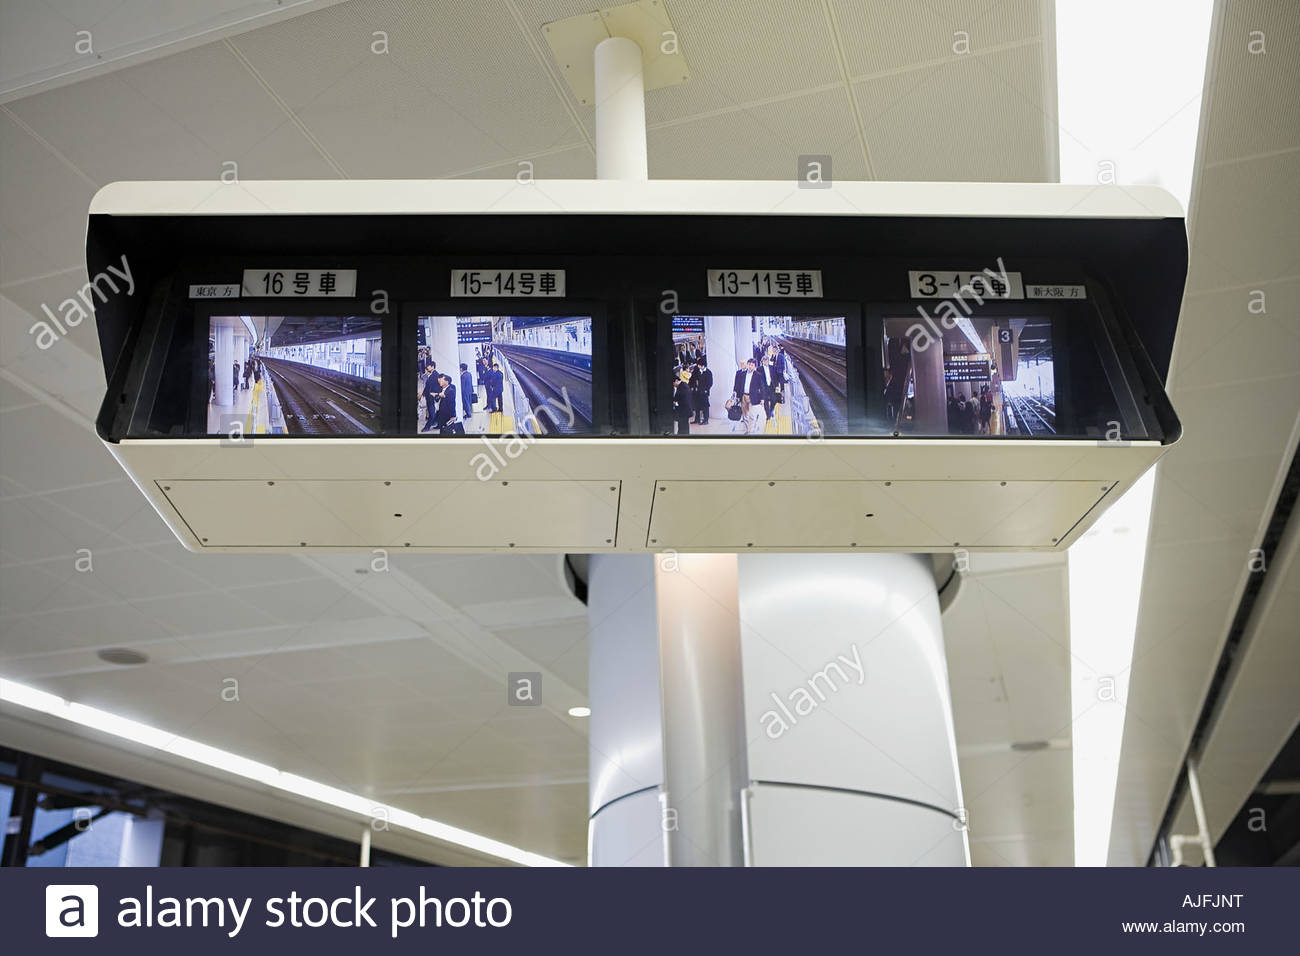 Surveillance in a railway station - Stock Image